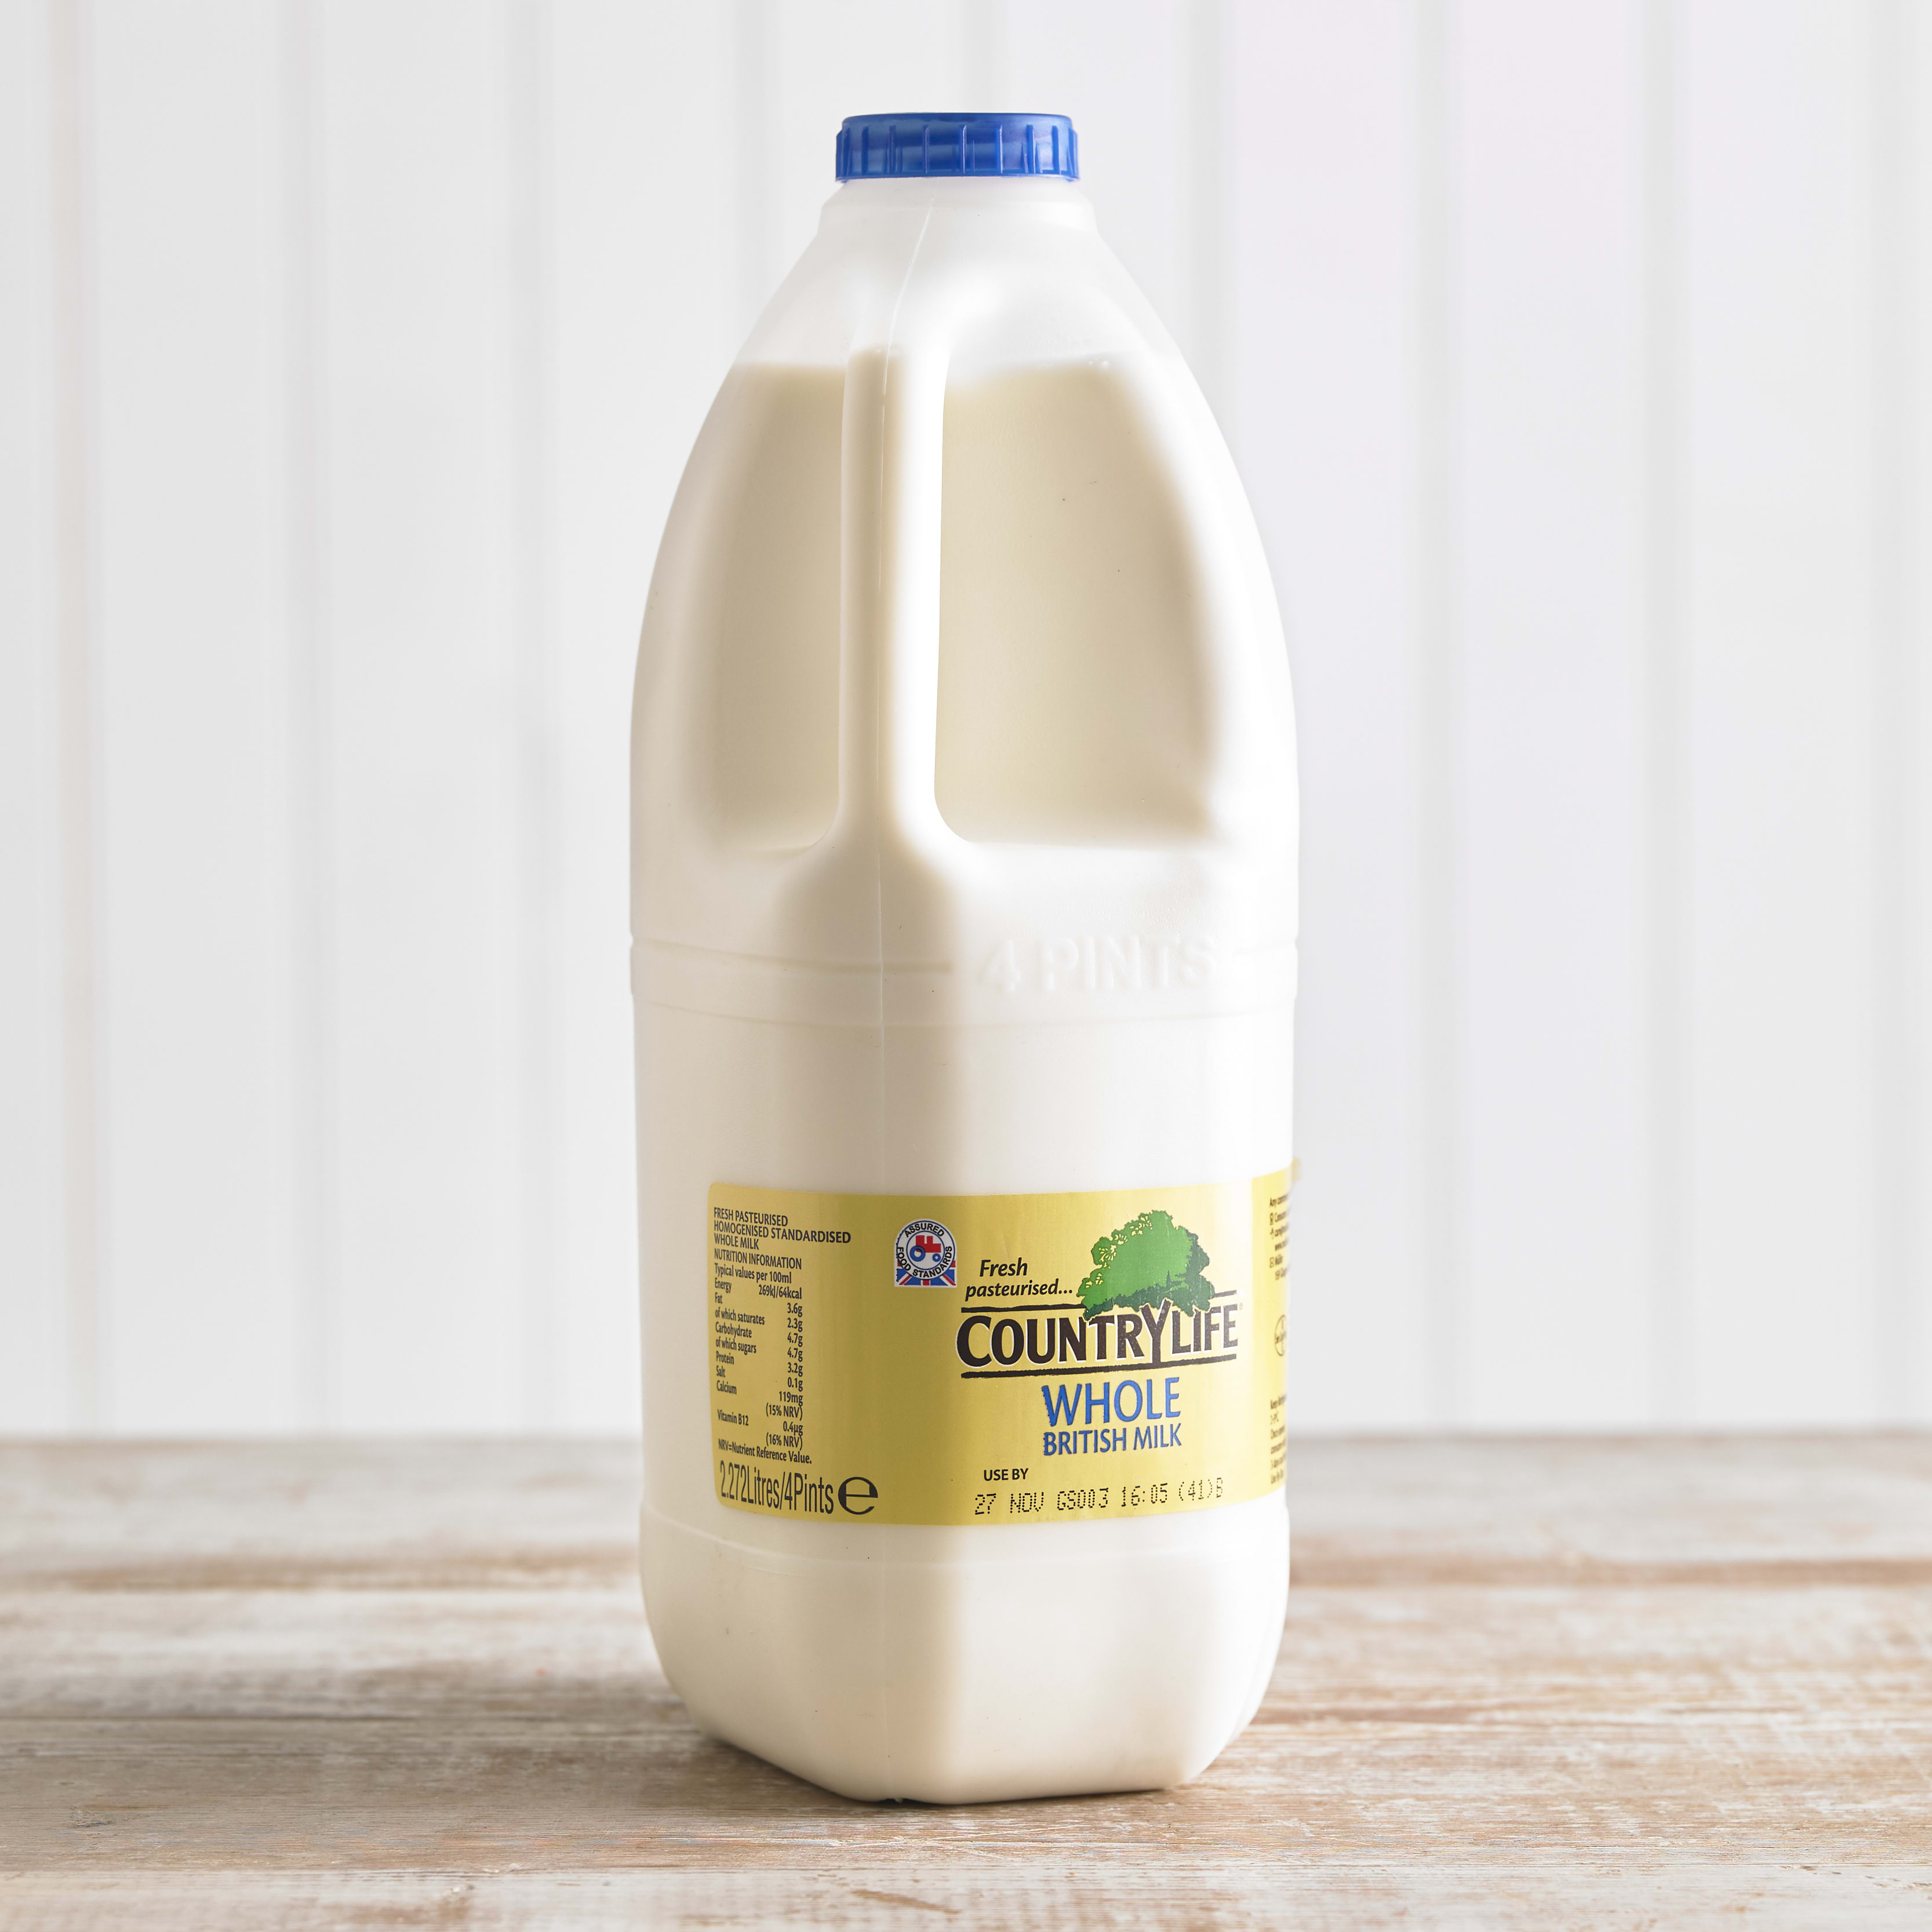 Country Life Whole Milk, 2.27L, 4pt